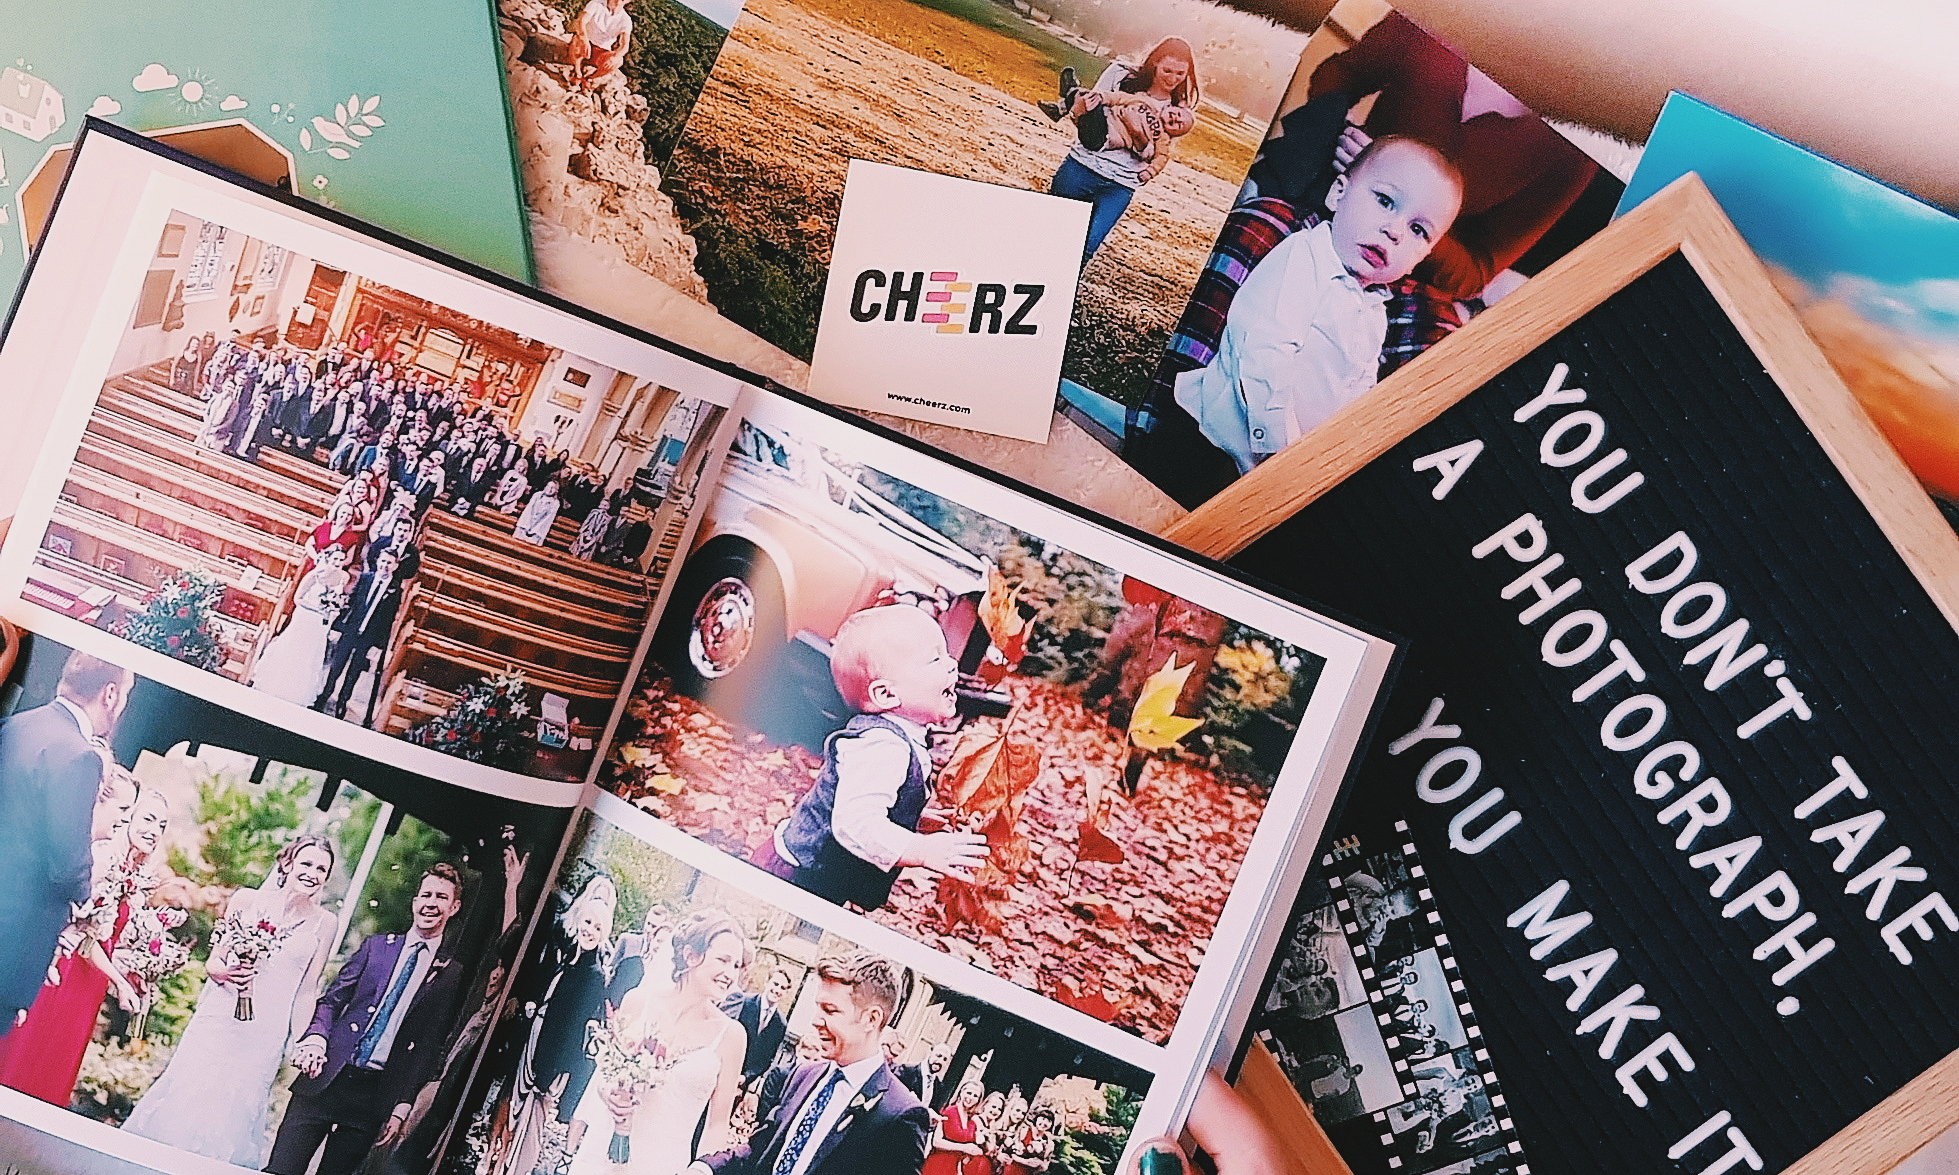 Photobook from Cheerz